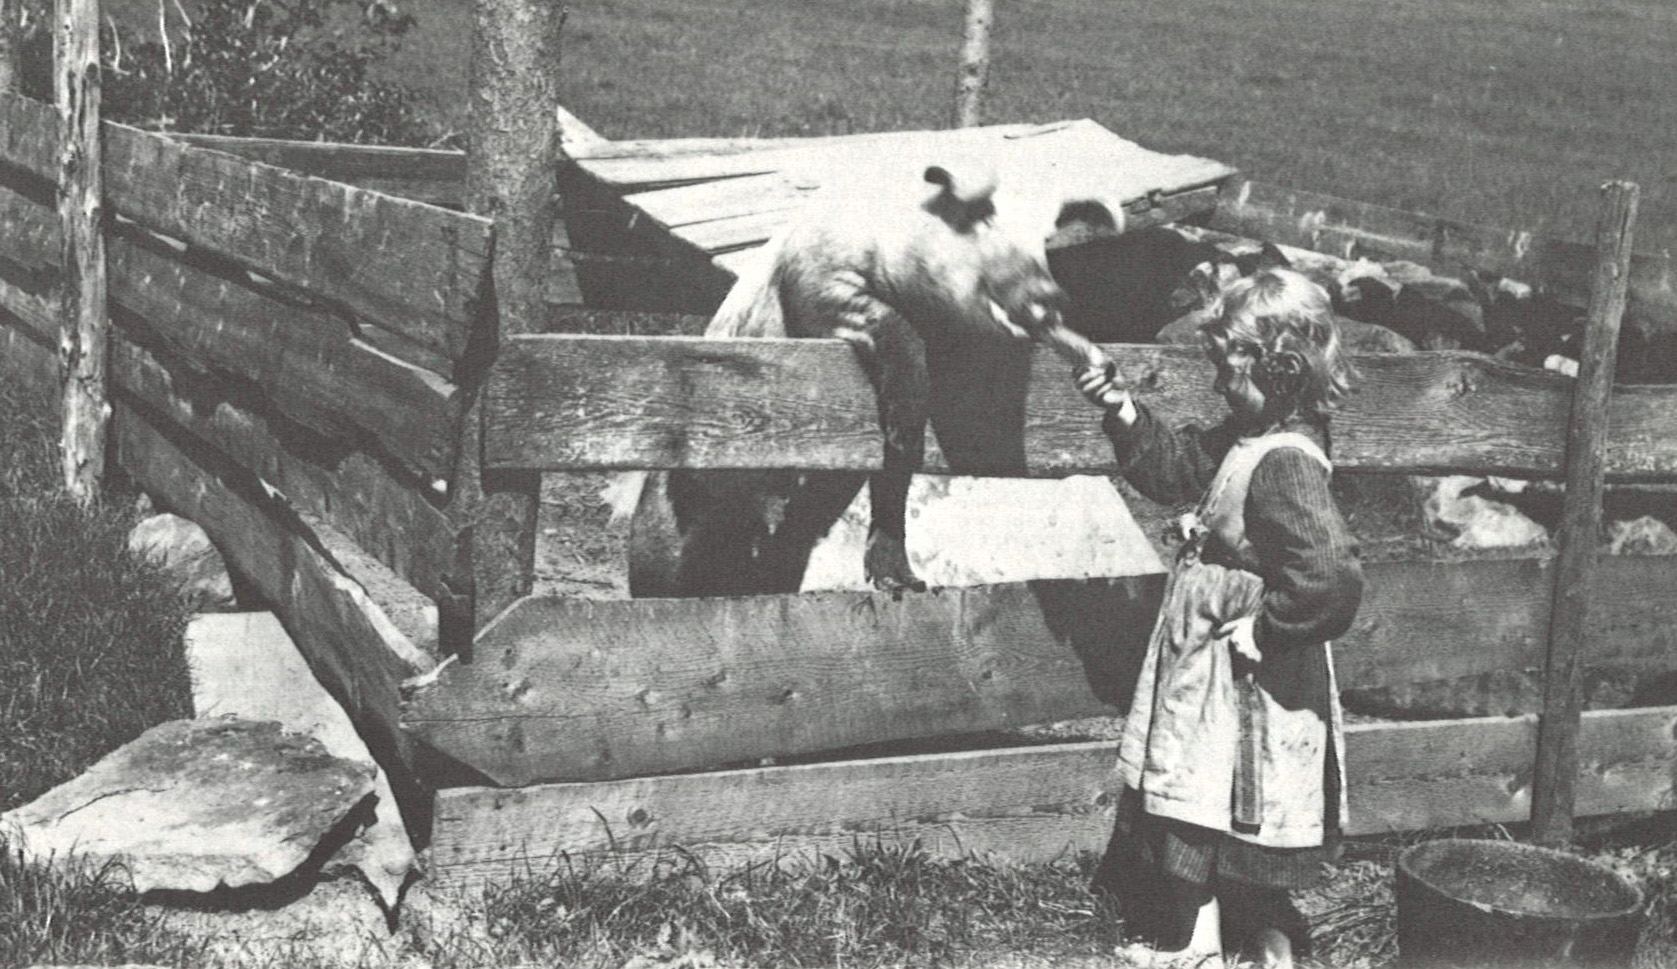 Historic photograph of a young girl feeding a large pig.